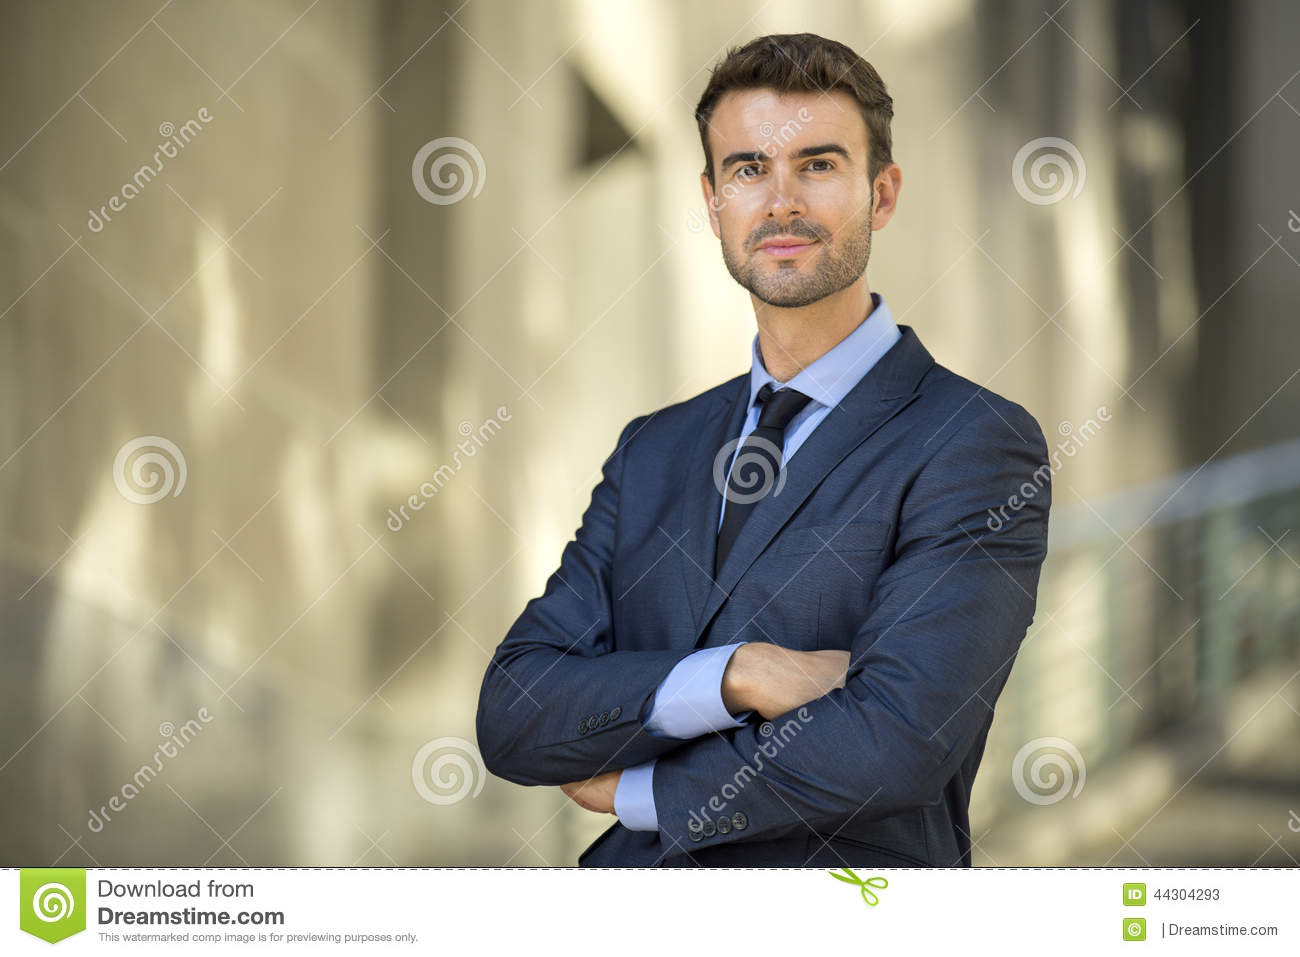 business-man-standing-confident-smile-po